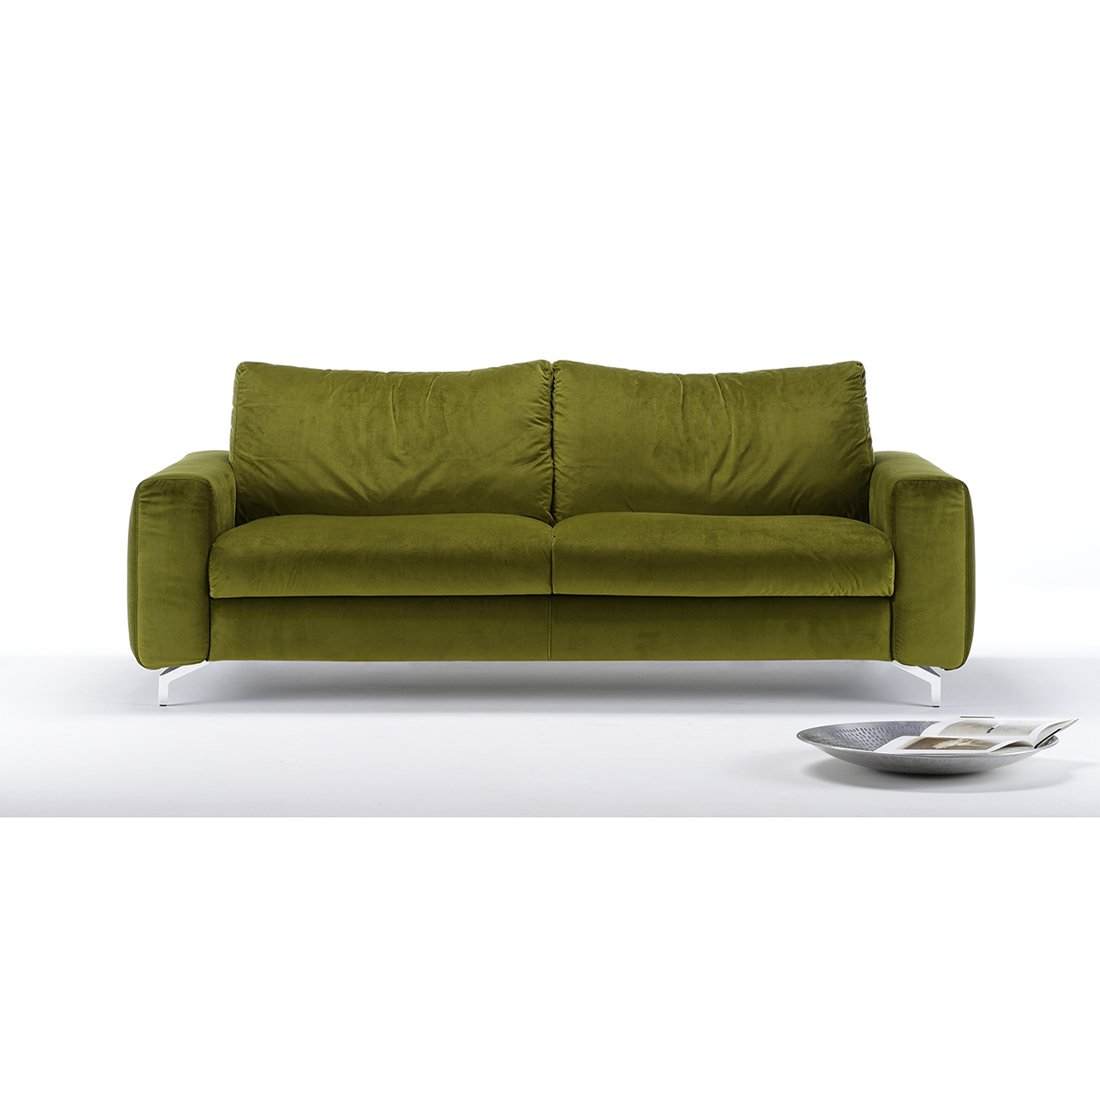 Canap velours convertible clarence meubles et atmosph re - Canape convertible vert ...